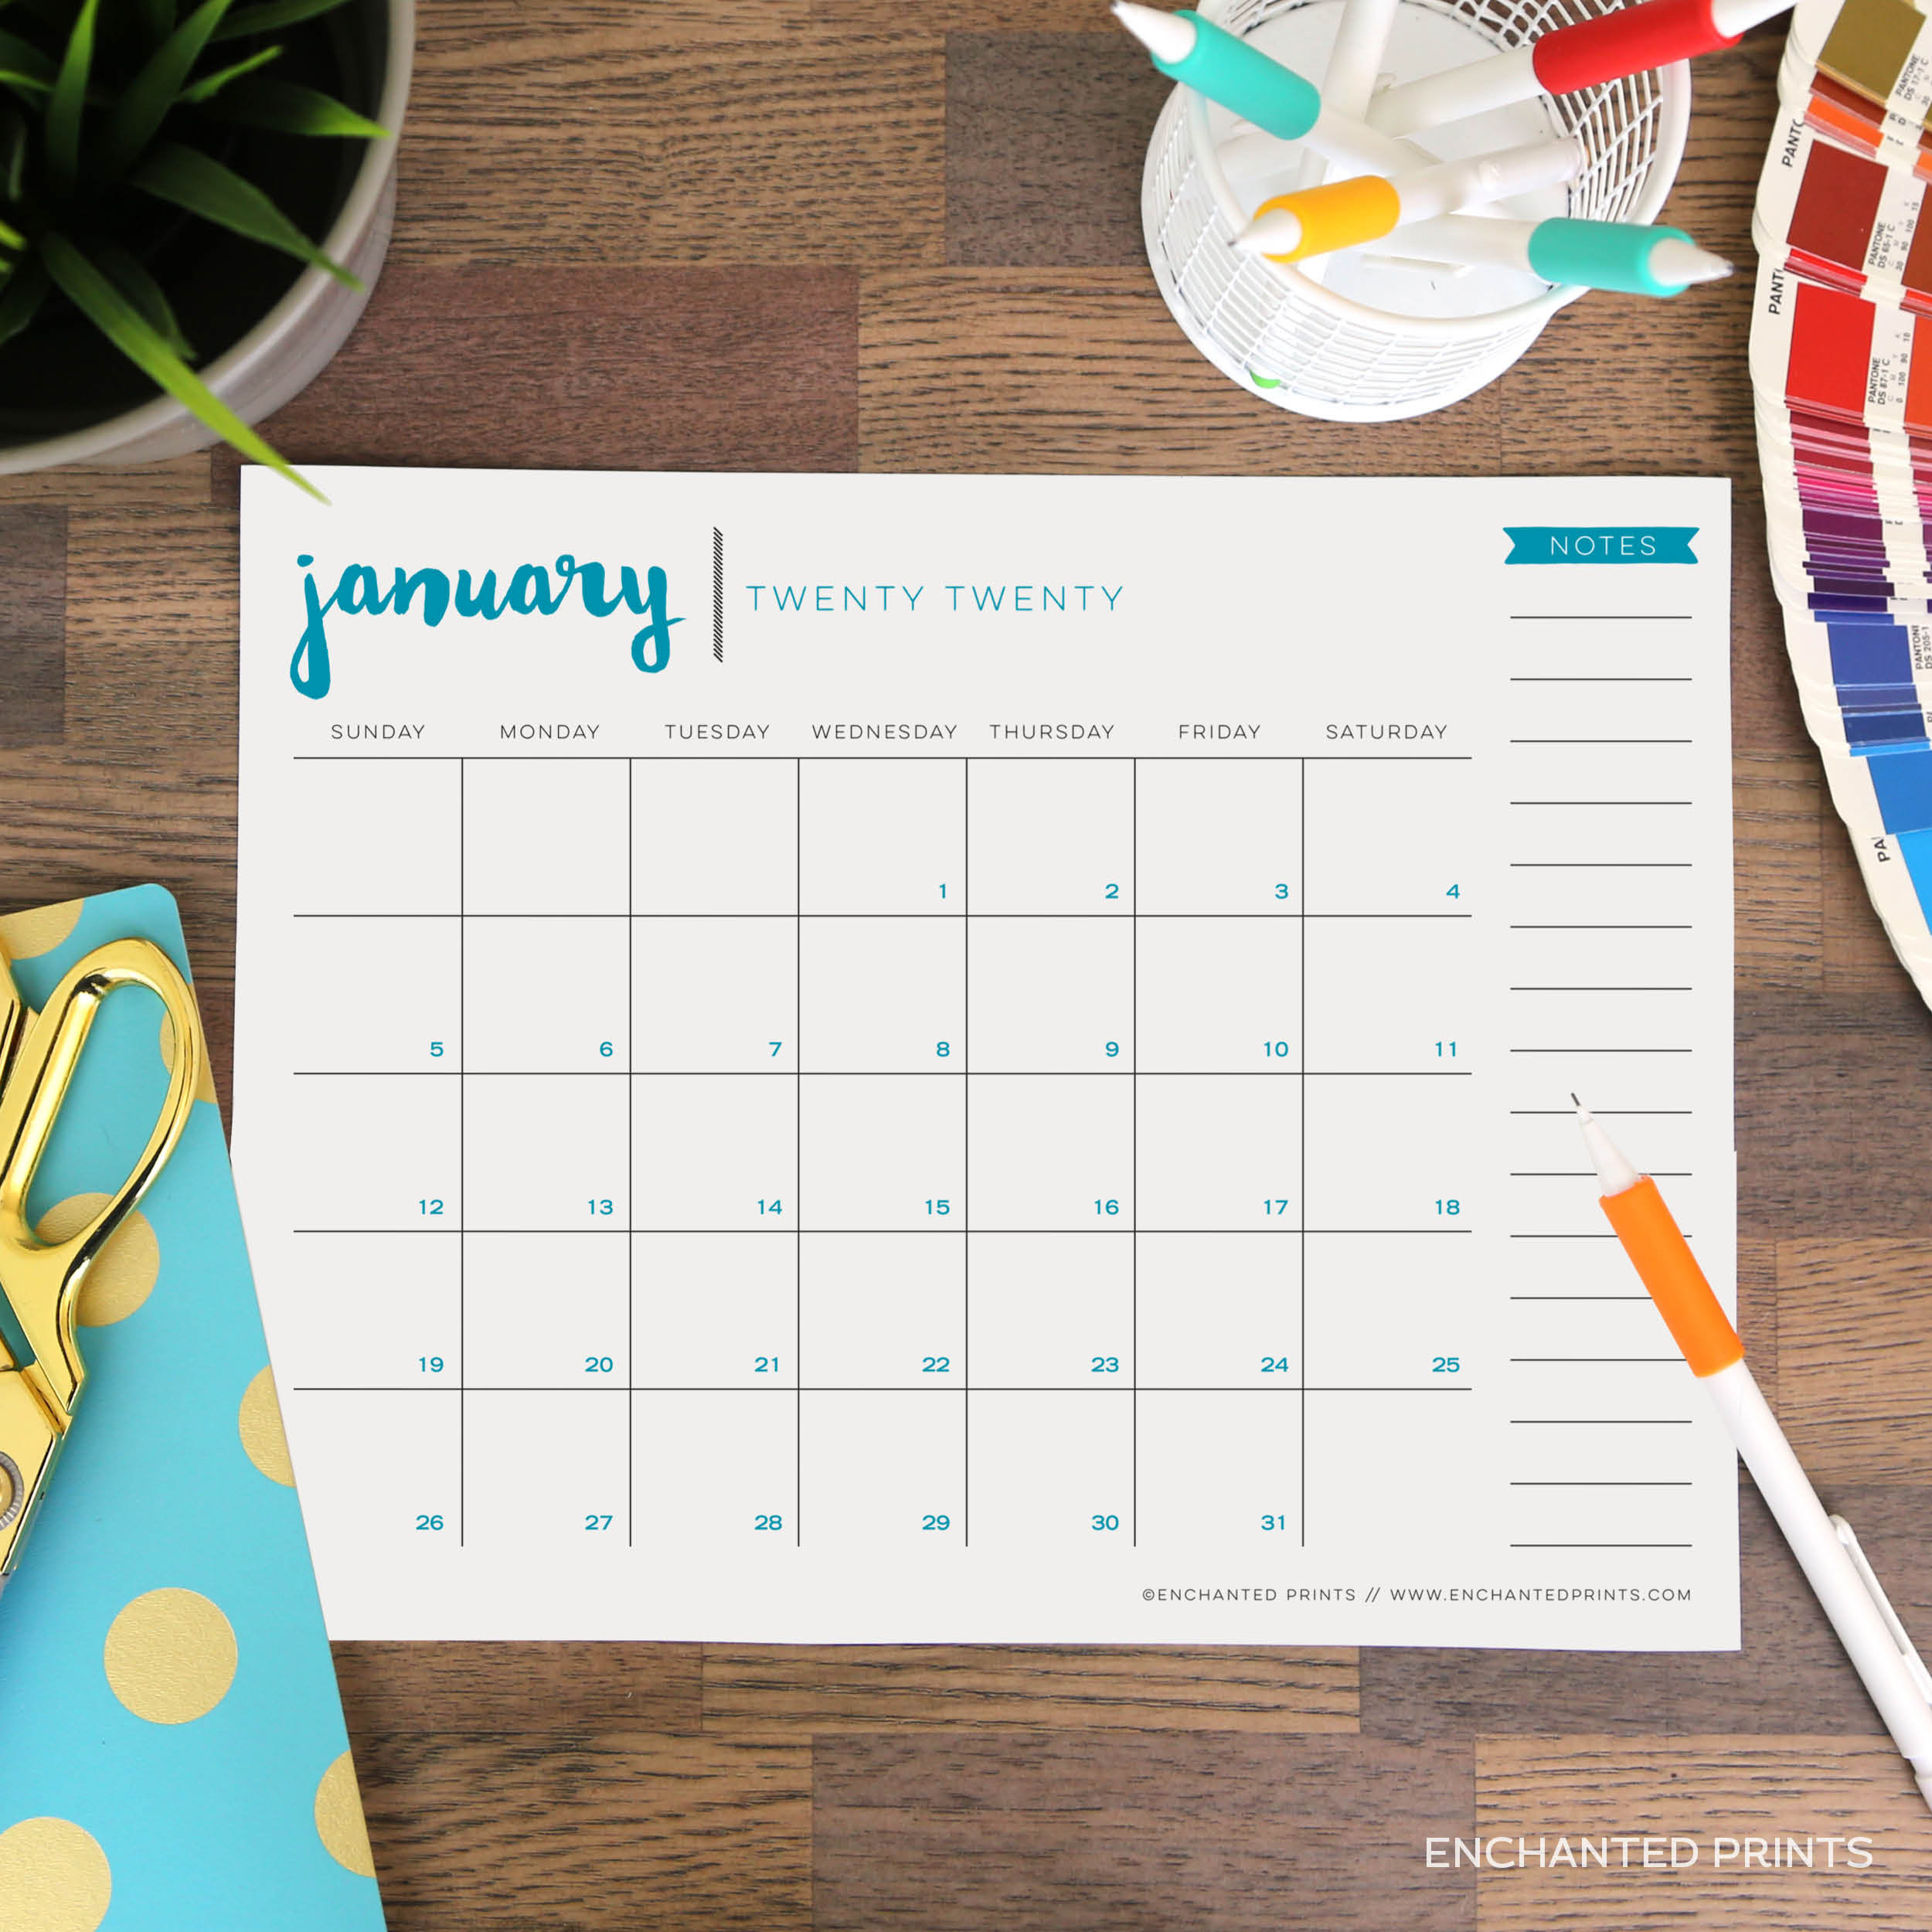 Printable 2020 Calendar - 12 Month Calendar - 2020 Planner - 8.5 X 11  Calendar - Instant Download with regard to Printable 8.5 X 11 2020 Calendar